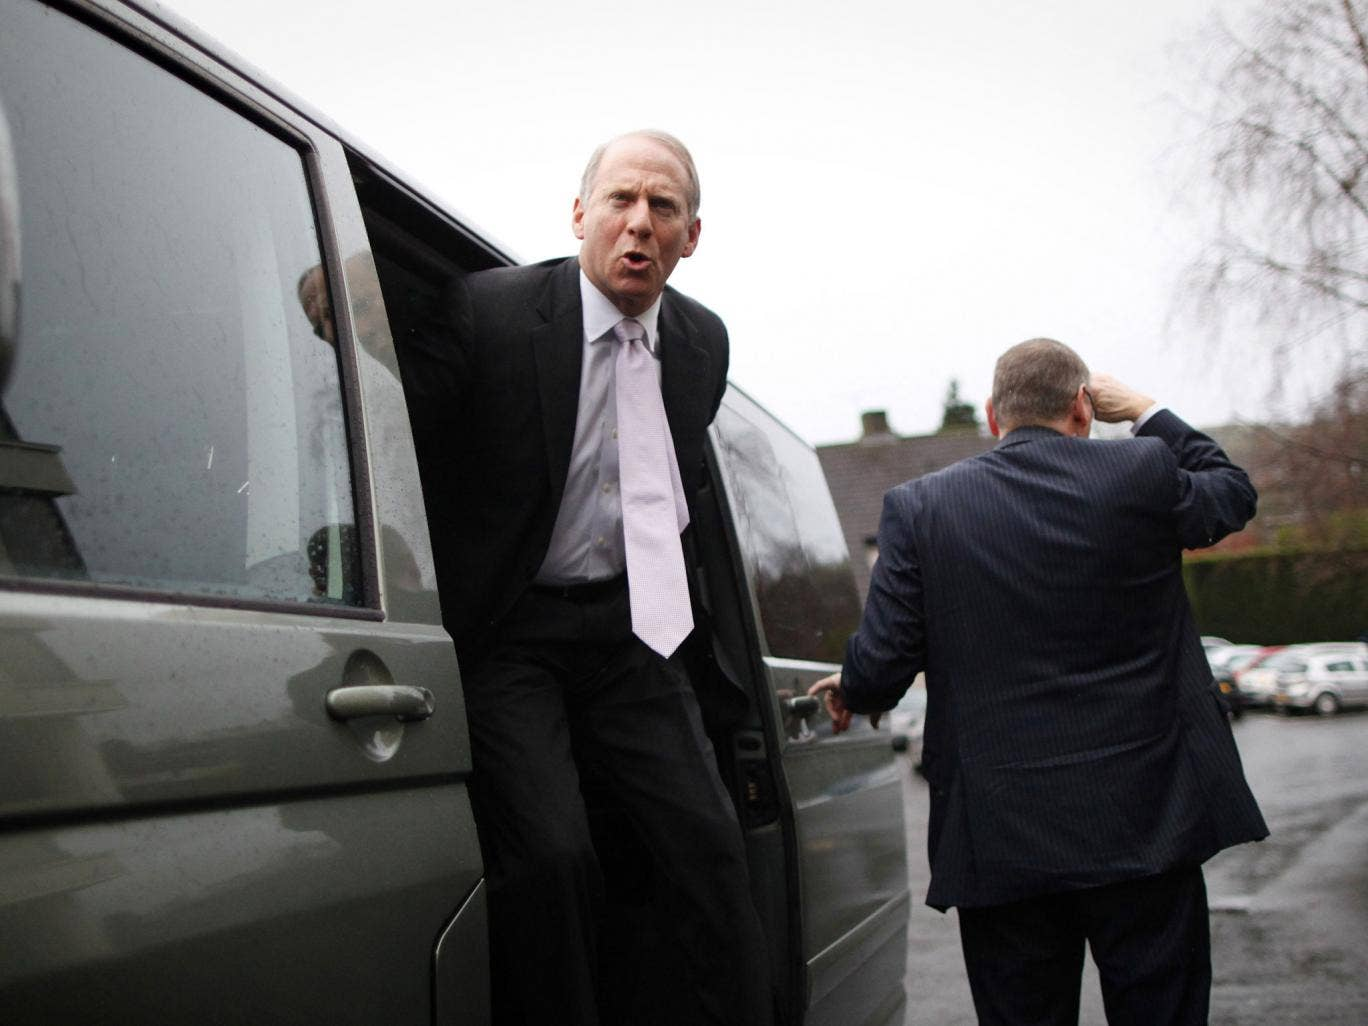 US envoy Richard Haass said talks would conclude on Monday